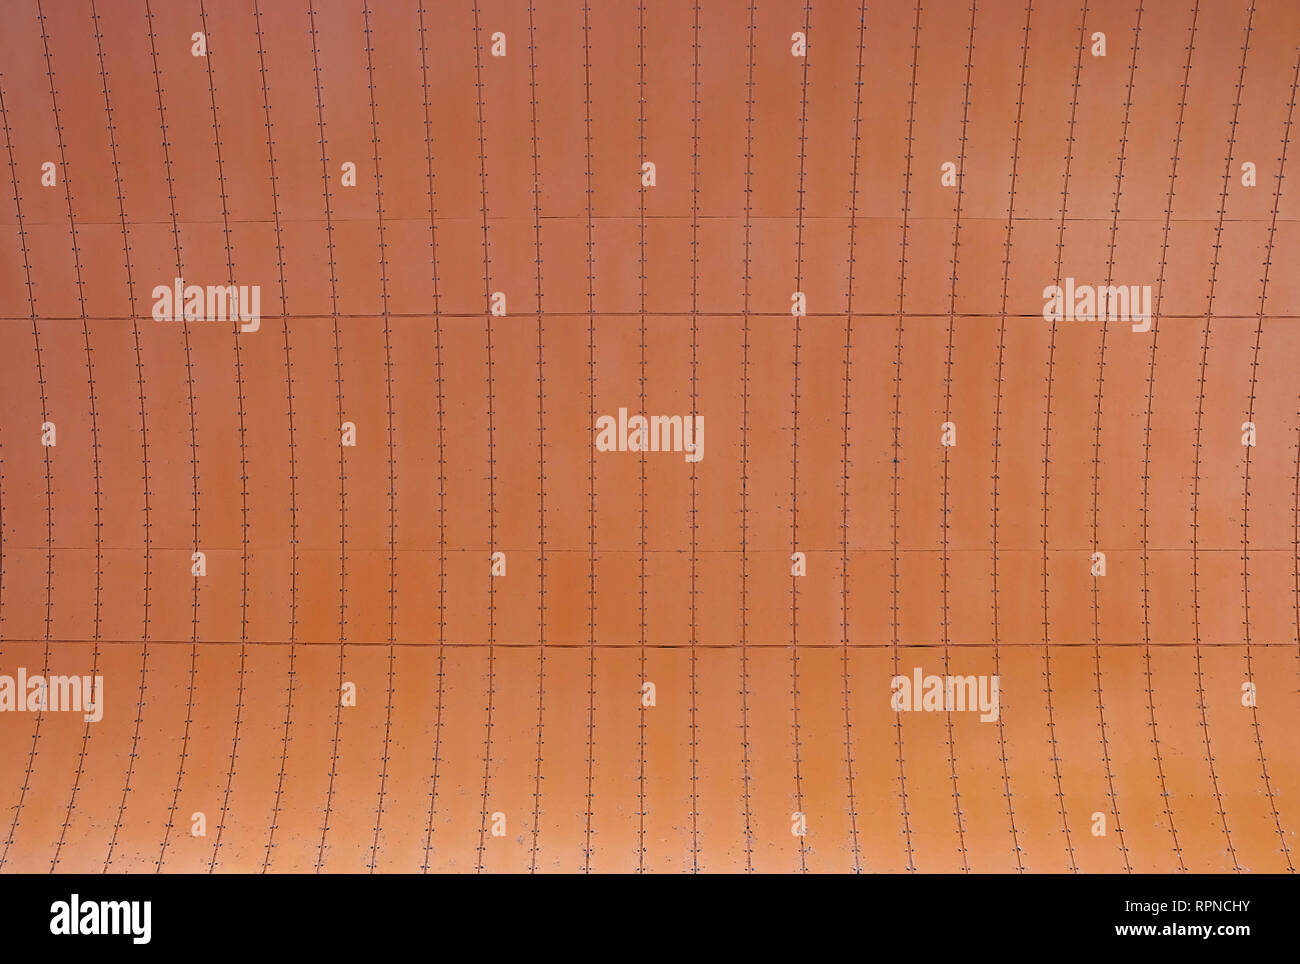 texture background metal surface evenly divided into rectangles reddish brown - Stock Image